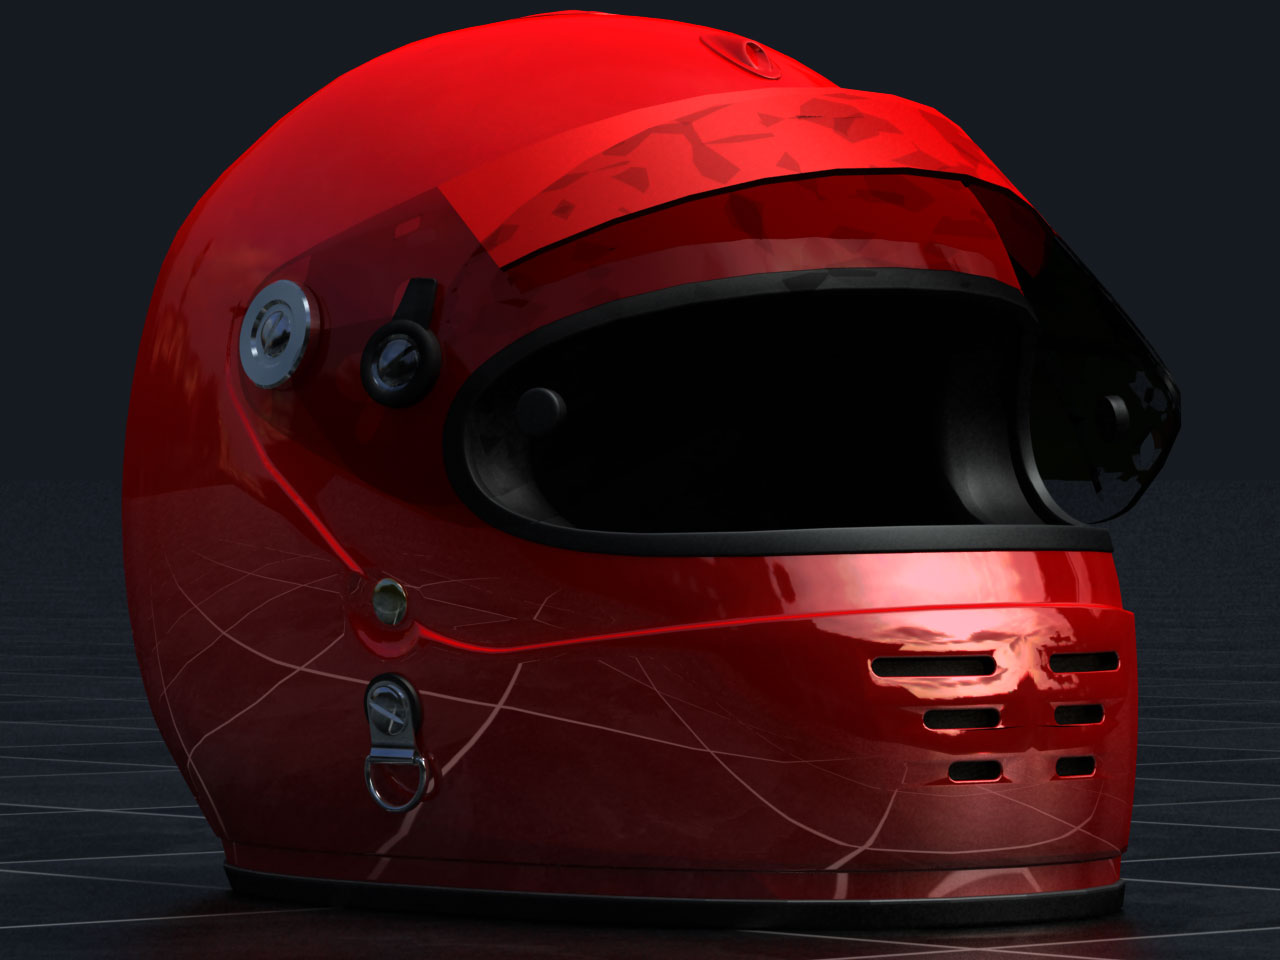 arai gp 3 helmet released. Black Bedroom Furniture Sets. Home Design Ideas